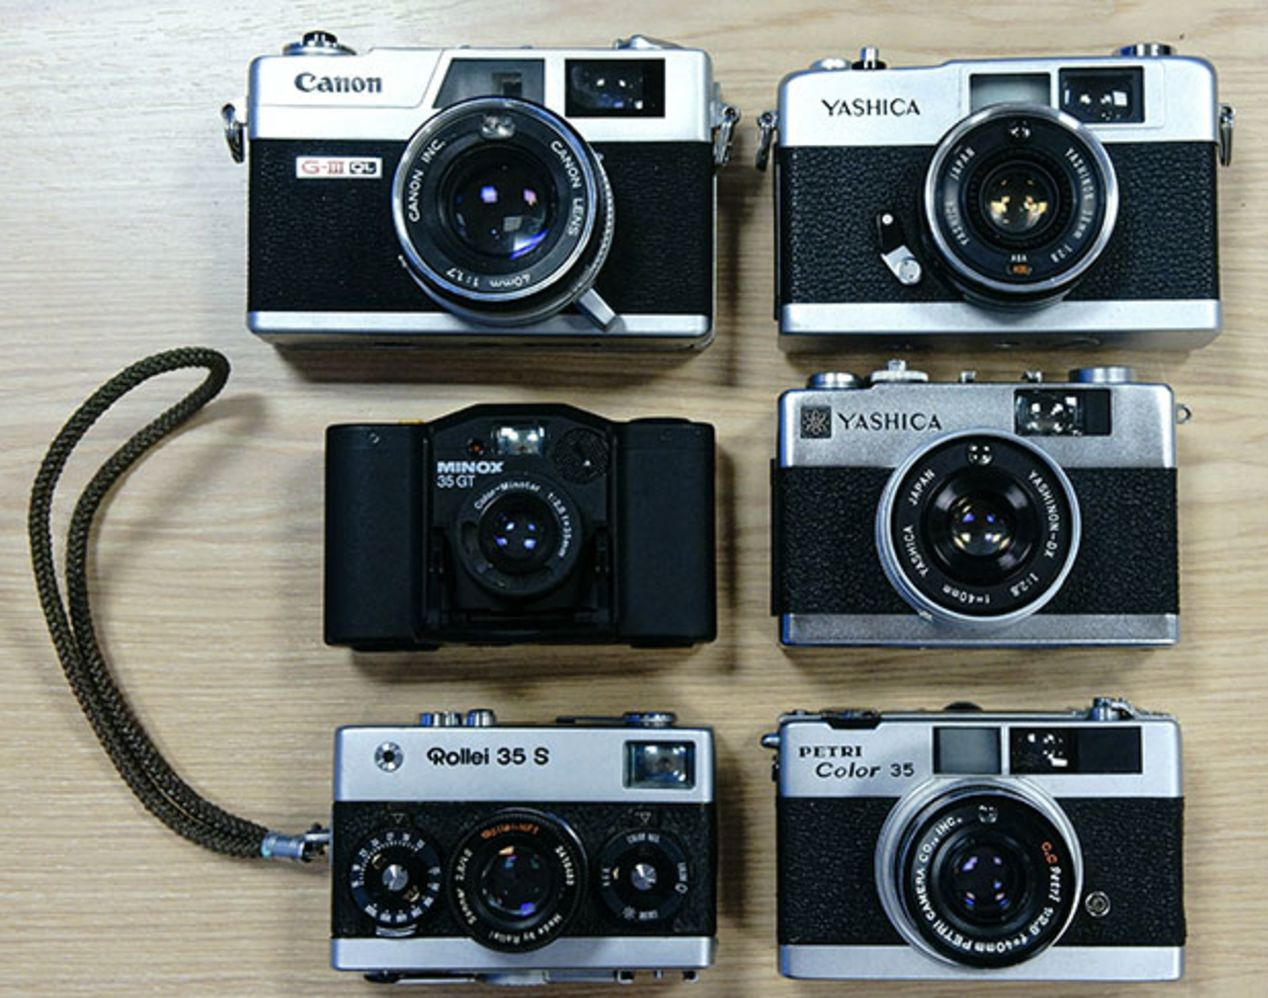 Yashica 35-ME ~$40-50, Yashica 35 MC ~$40-50, Minox GT/GT-E ~$70-90, compared against Canonet QL 17 GIII (top left) and Rollei 35S/Petri Color 35 (bottom two).